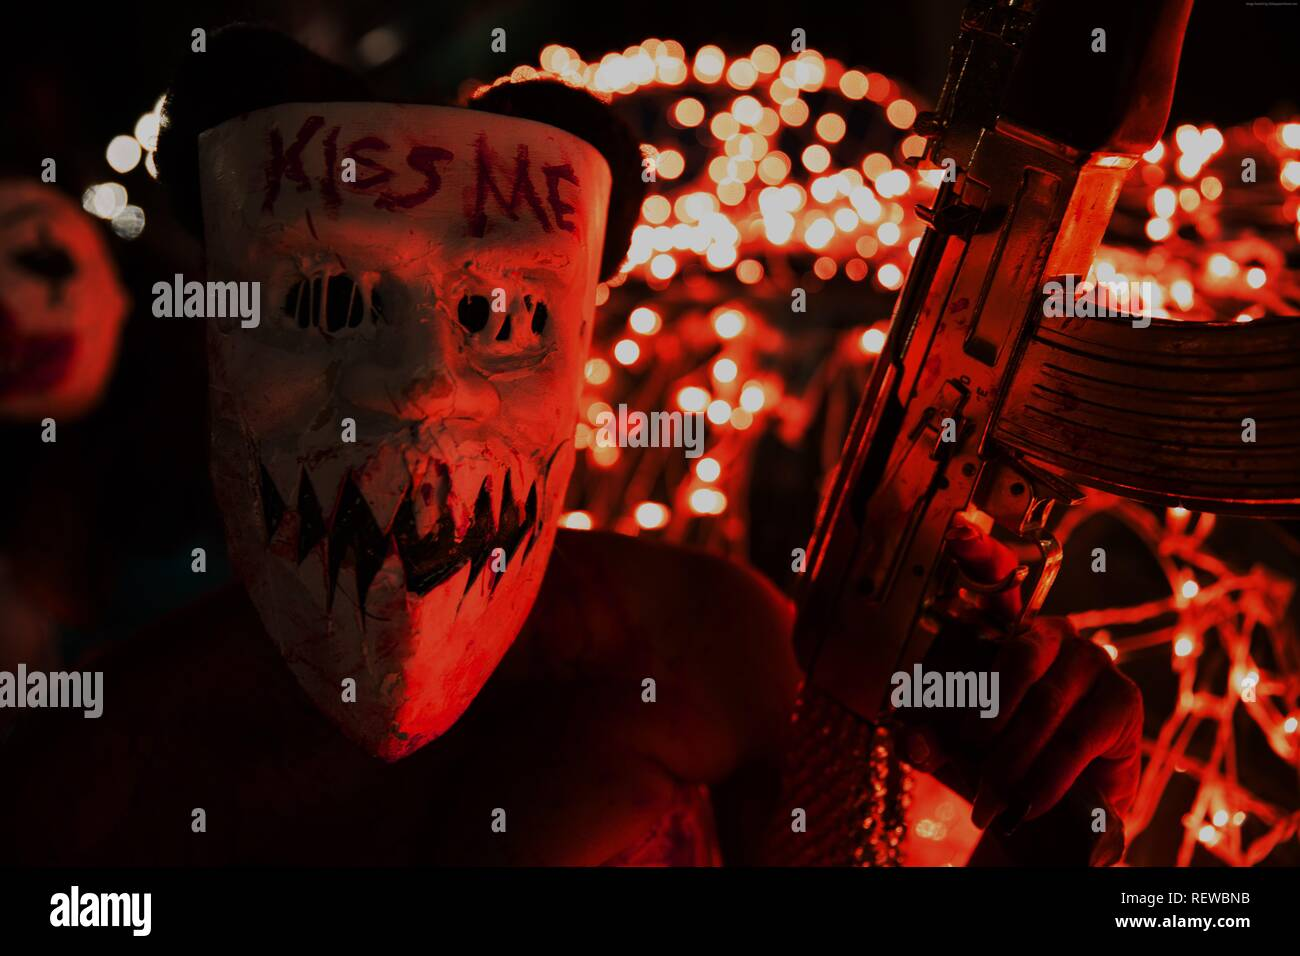 MASKED PURGER THE PURGE: ELECTION YEAR (2016) - Stock Image